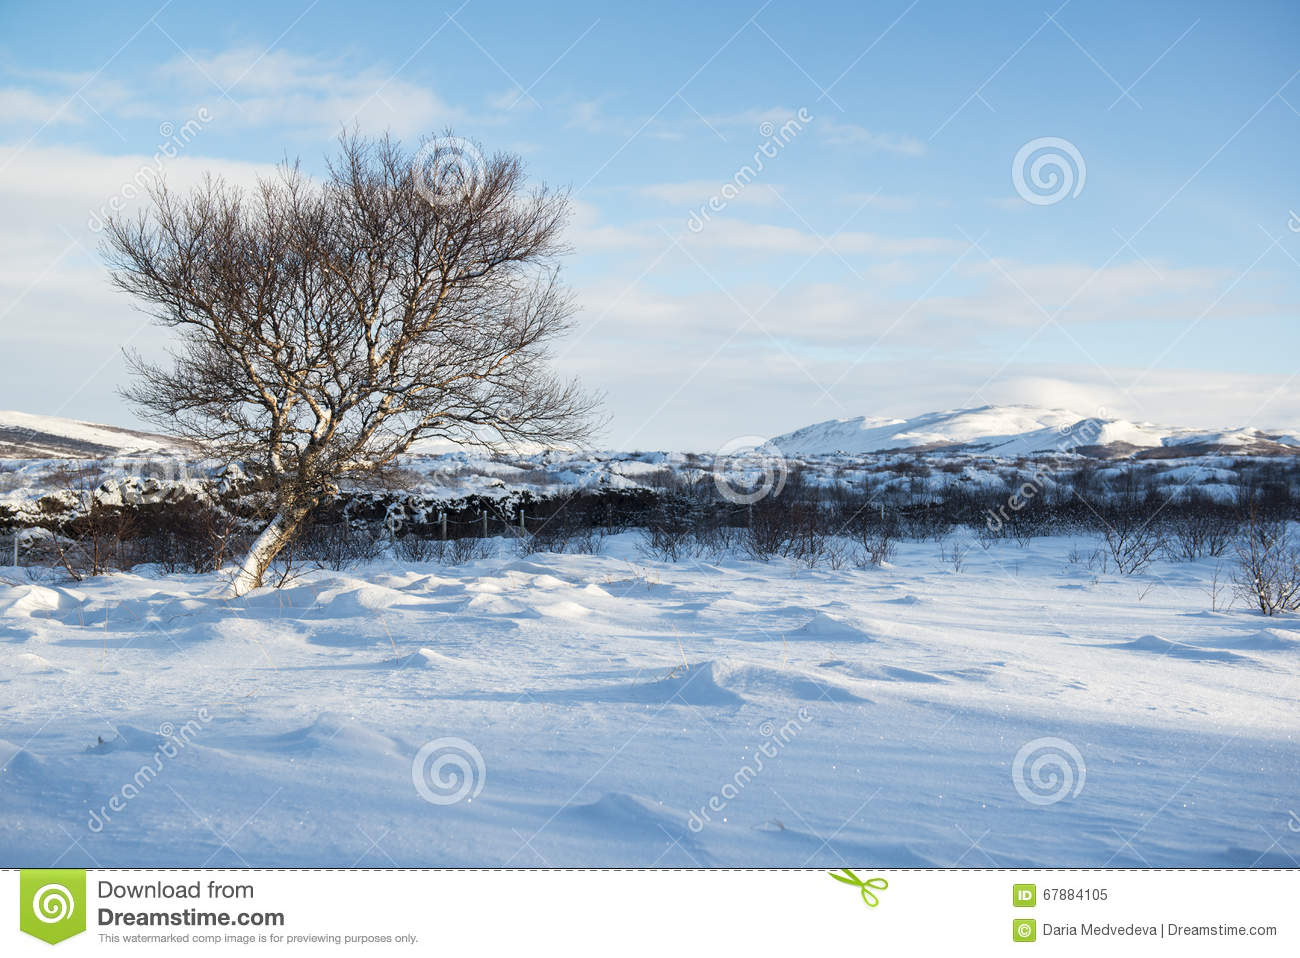 Landscape with snow dunes and a lonely winter tree, Iceland